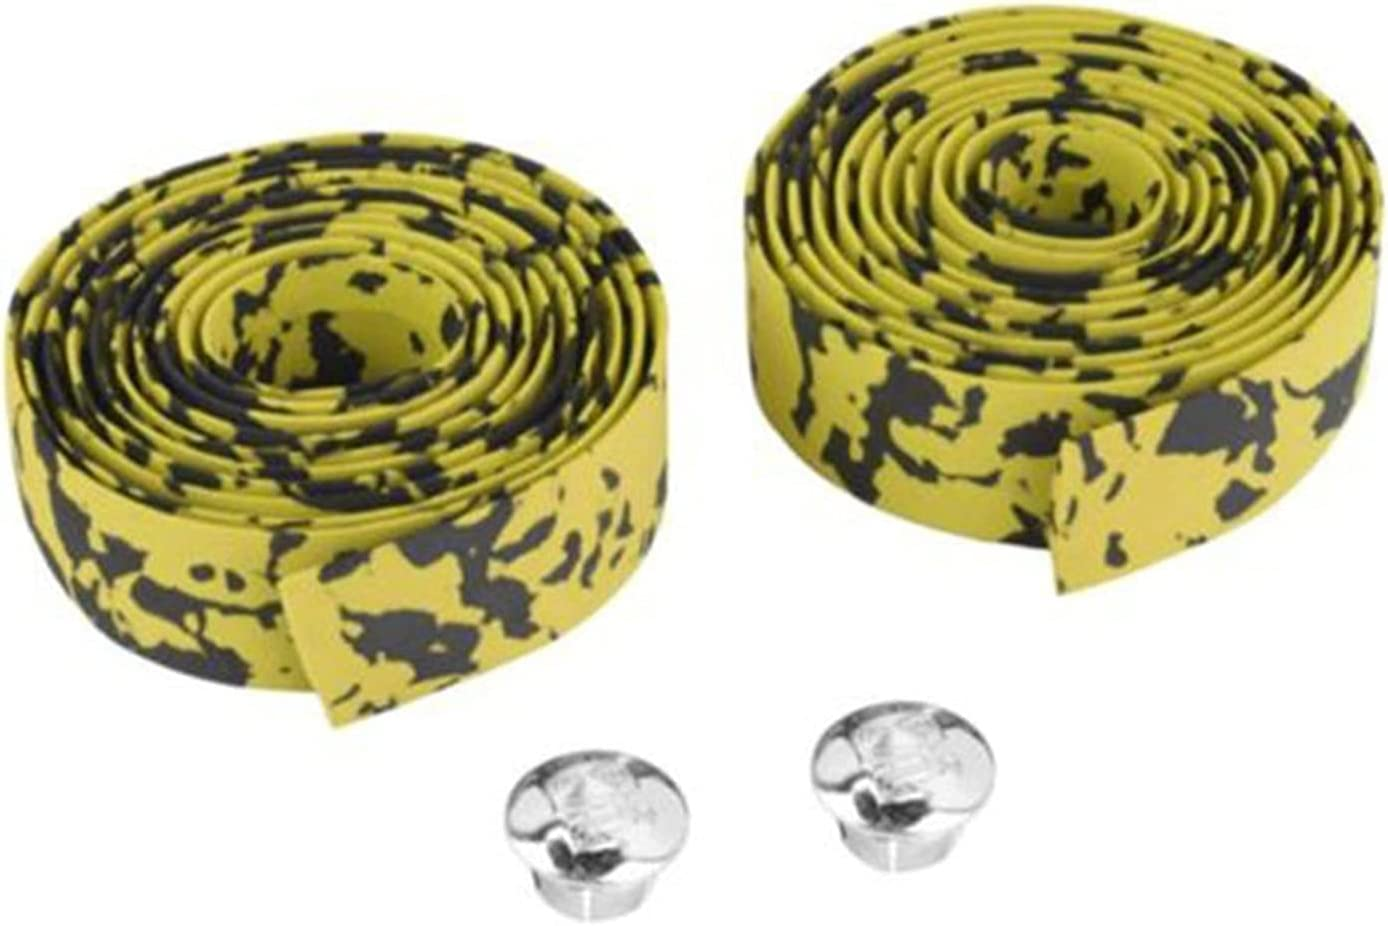 LJQYR Bicycle Parts 2Pcs Road Bike Tape Camouf Handlebar 2021 autumn and winter new Courier shipping free shipping